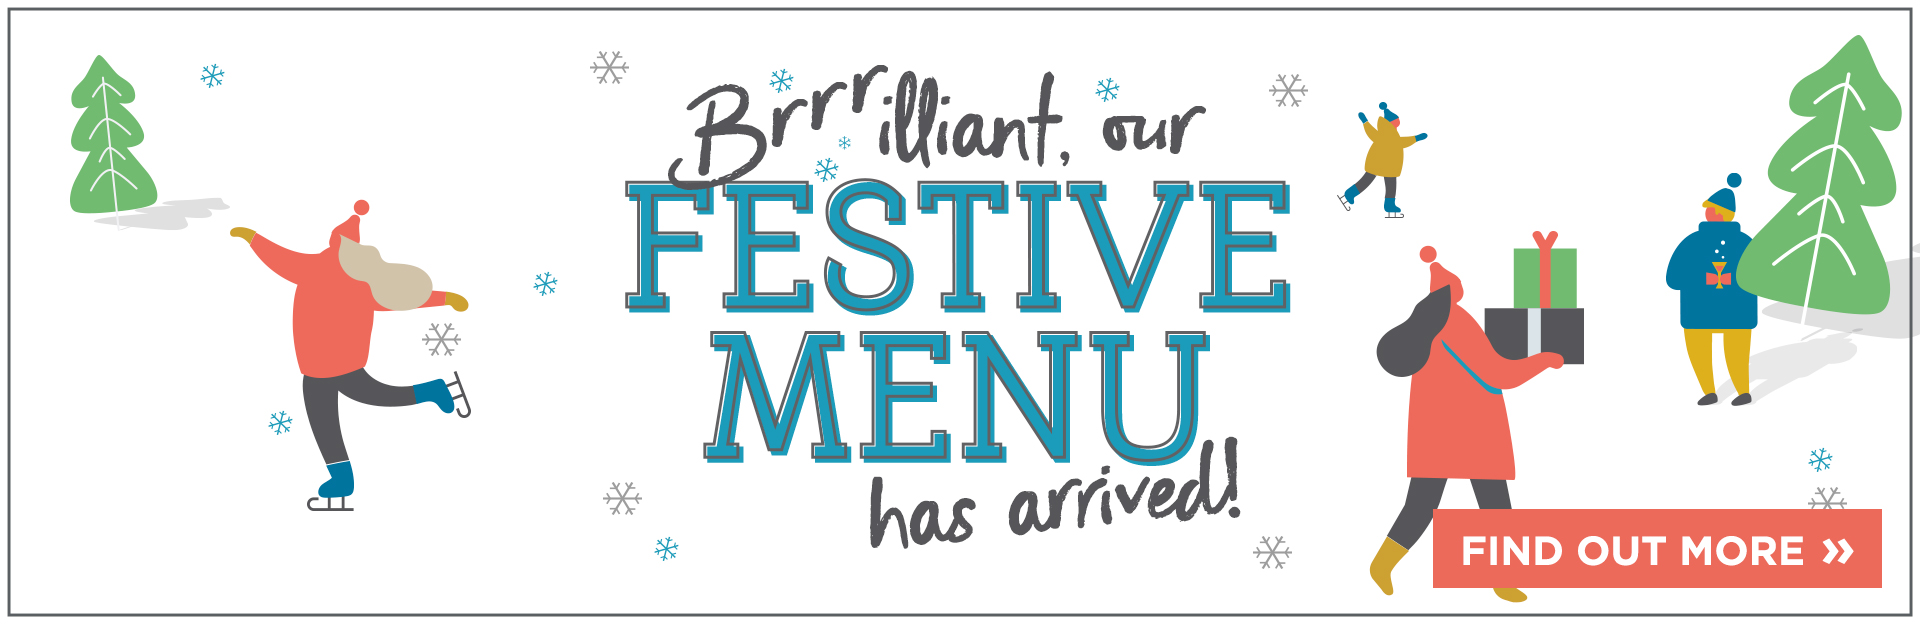 Festive Menu at The Walsgrave